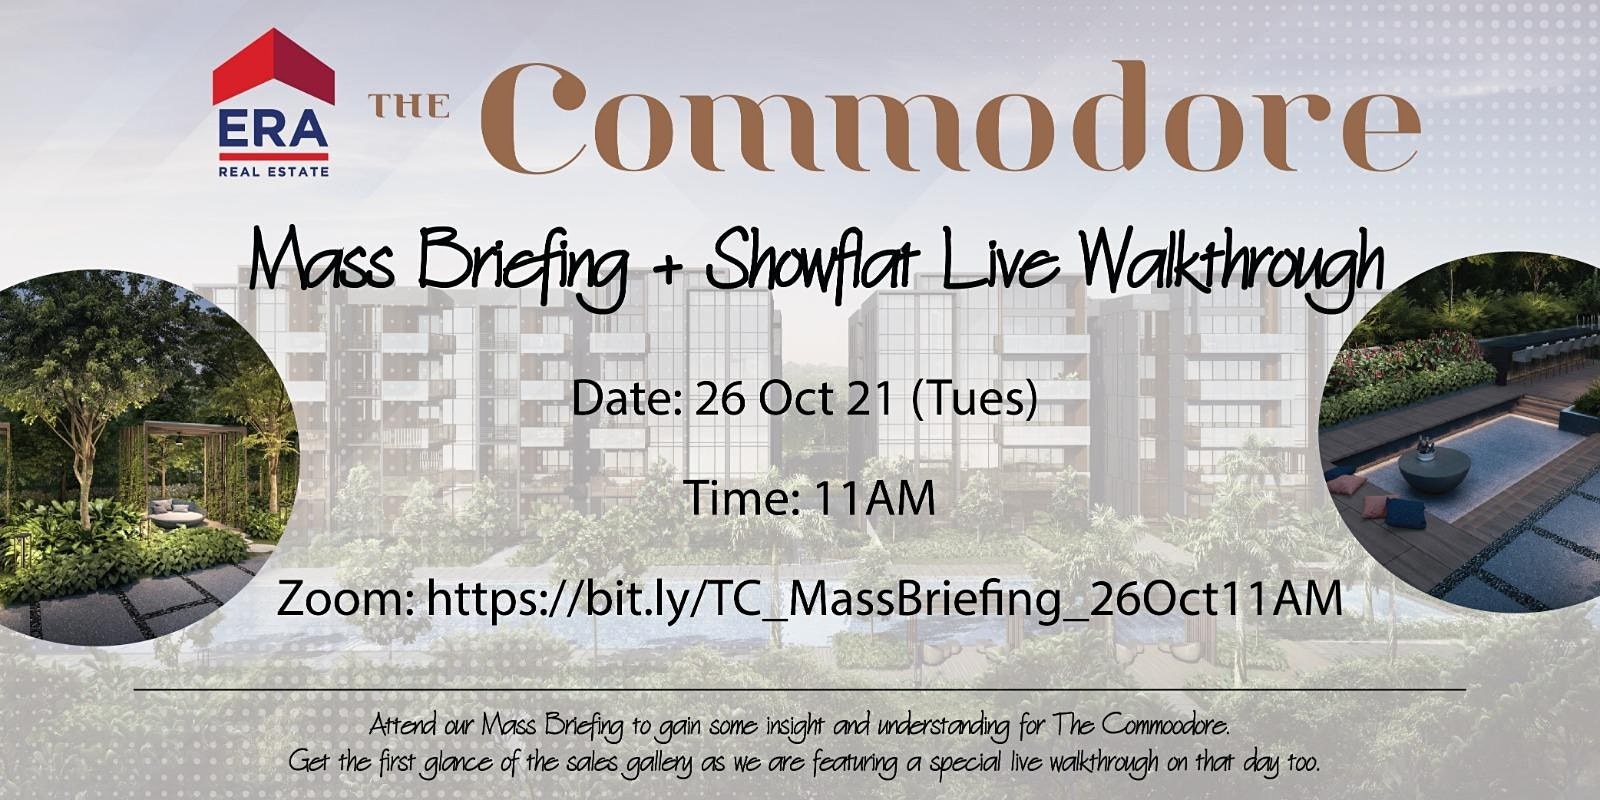 The Commodore Mass Briefing + Showflat Live Walkthrough